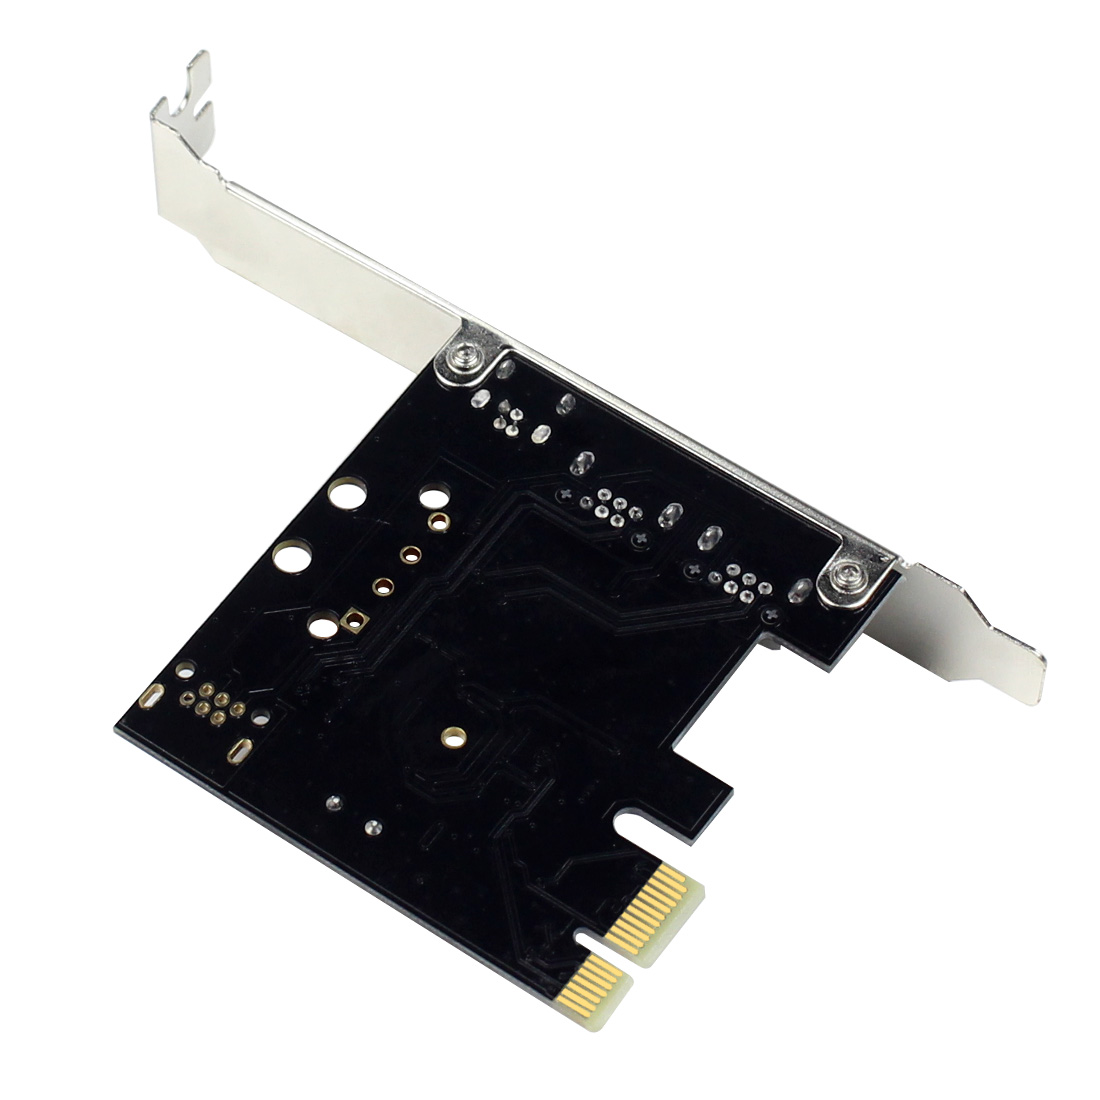 PCIe 3 Ports 1394A Firewire Expansion Card PCI Express to IEEE 1394 Adapter Controller 2 x 6 Pin And 1 x 4 Pin For Desktop PC